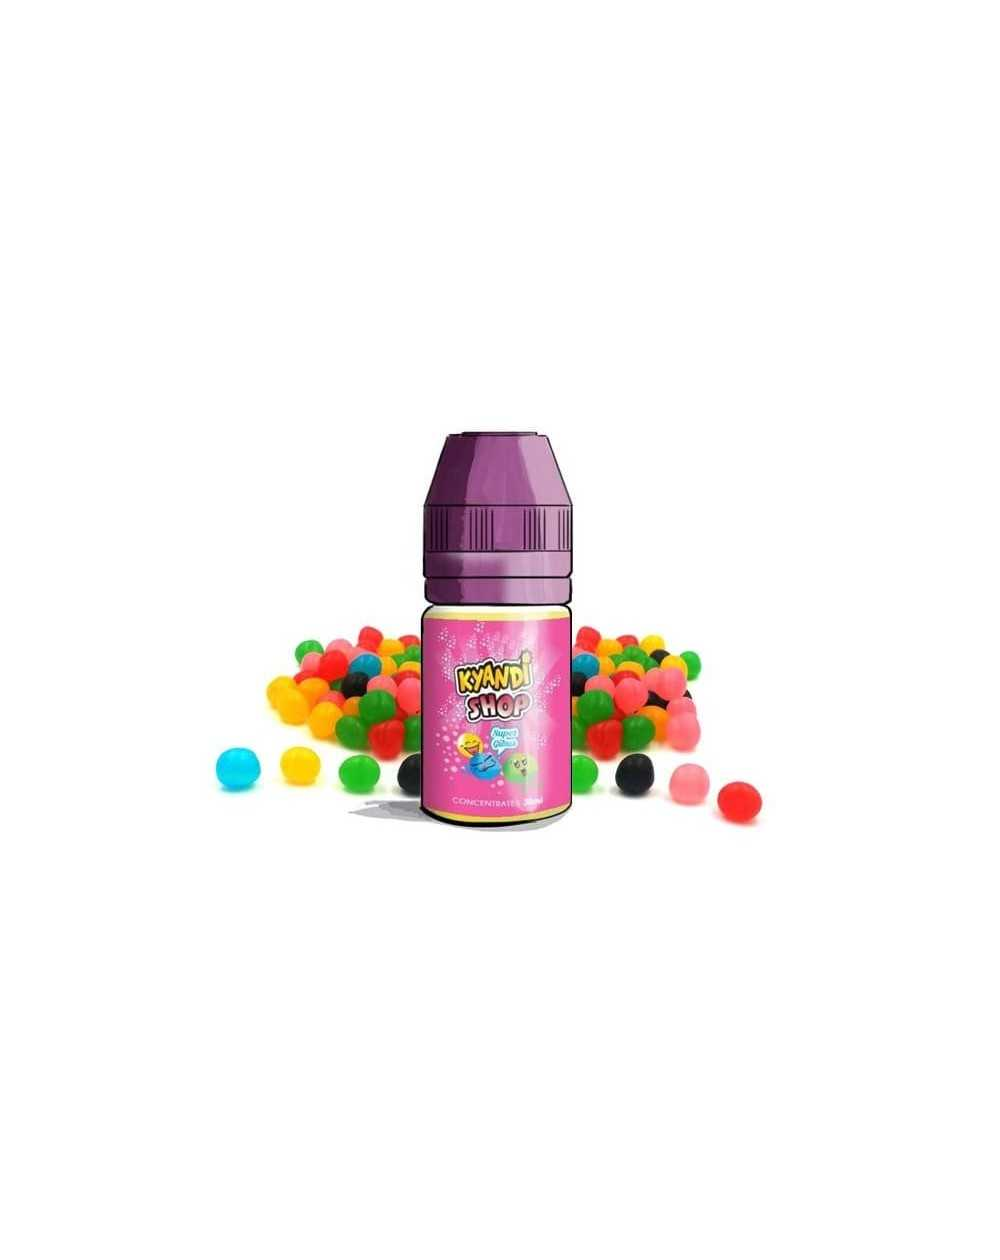 Concentrate Super Gibus 30ml - Kyandi Shop-1